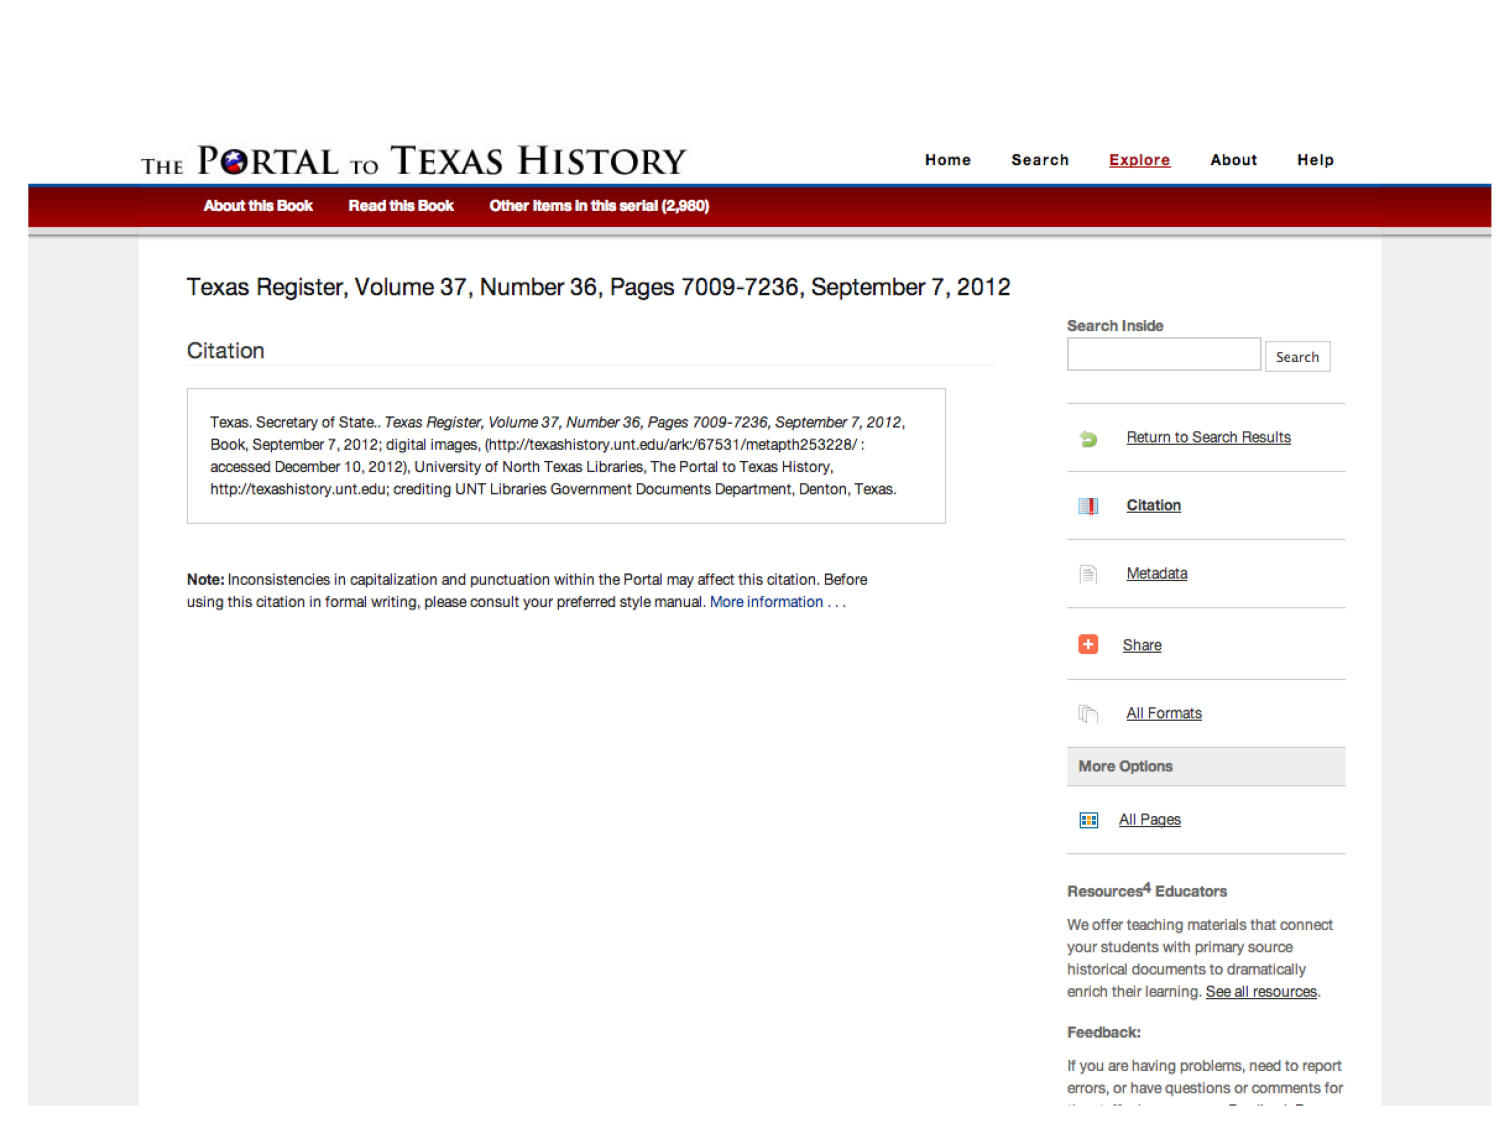 The Portal to Texas History: Technology Overview                                                                                                      [Sequence #]: 24 of 73